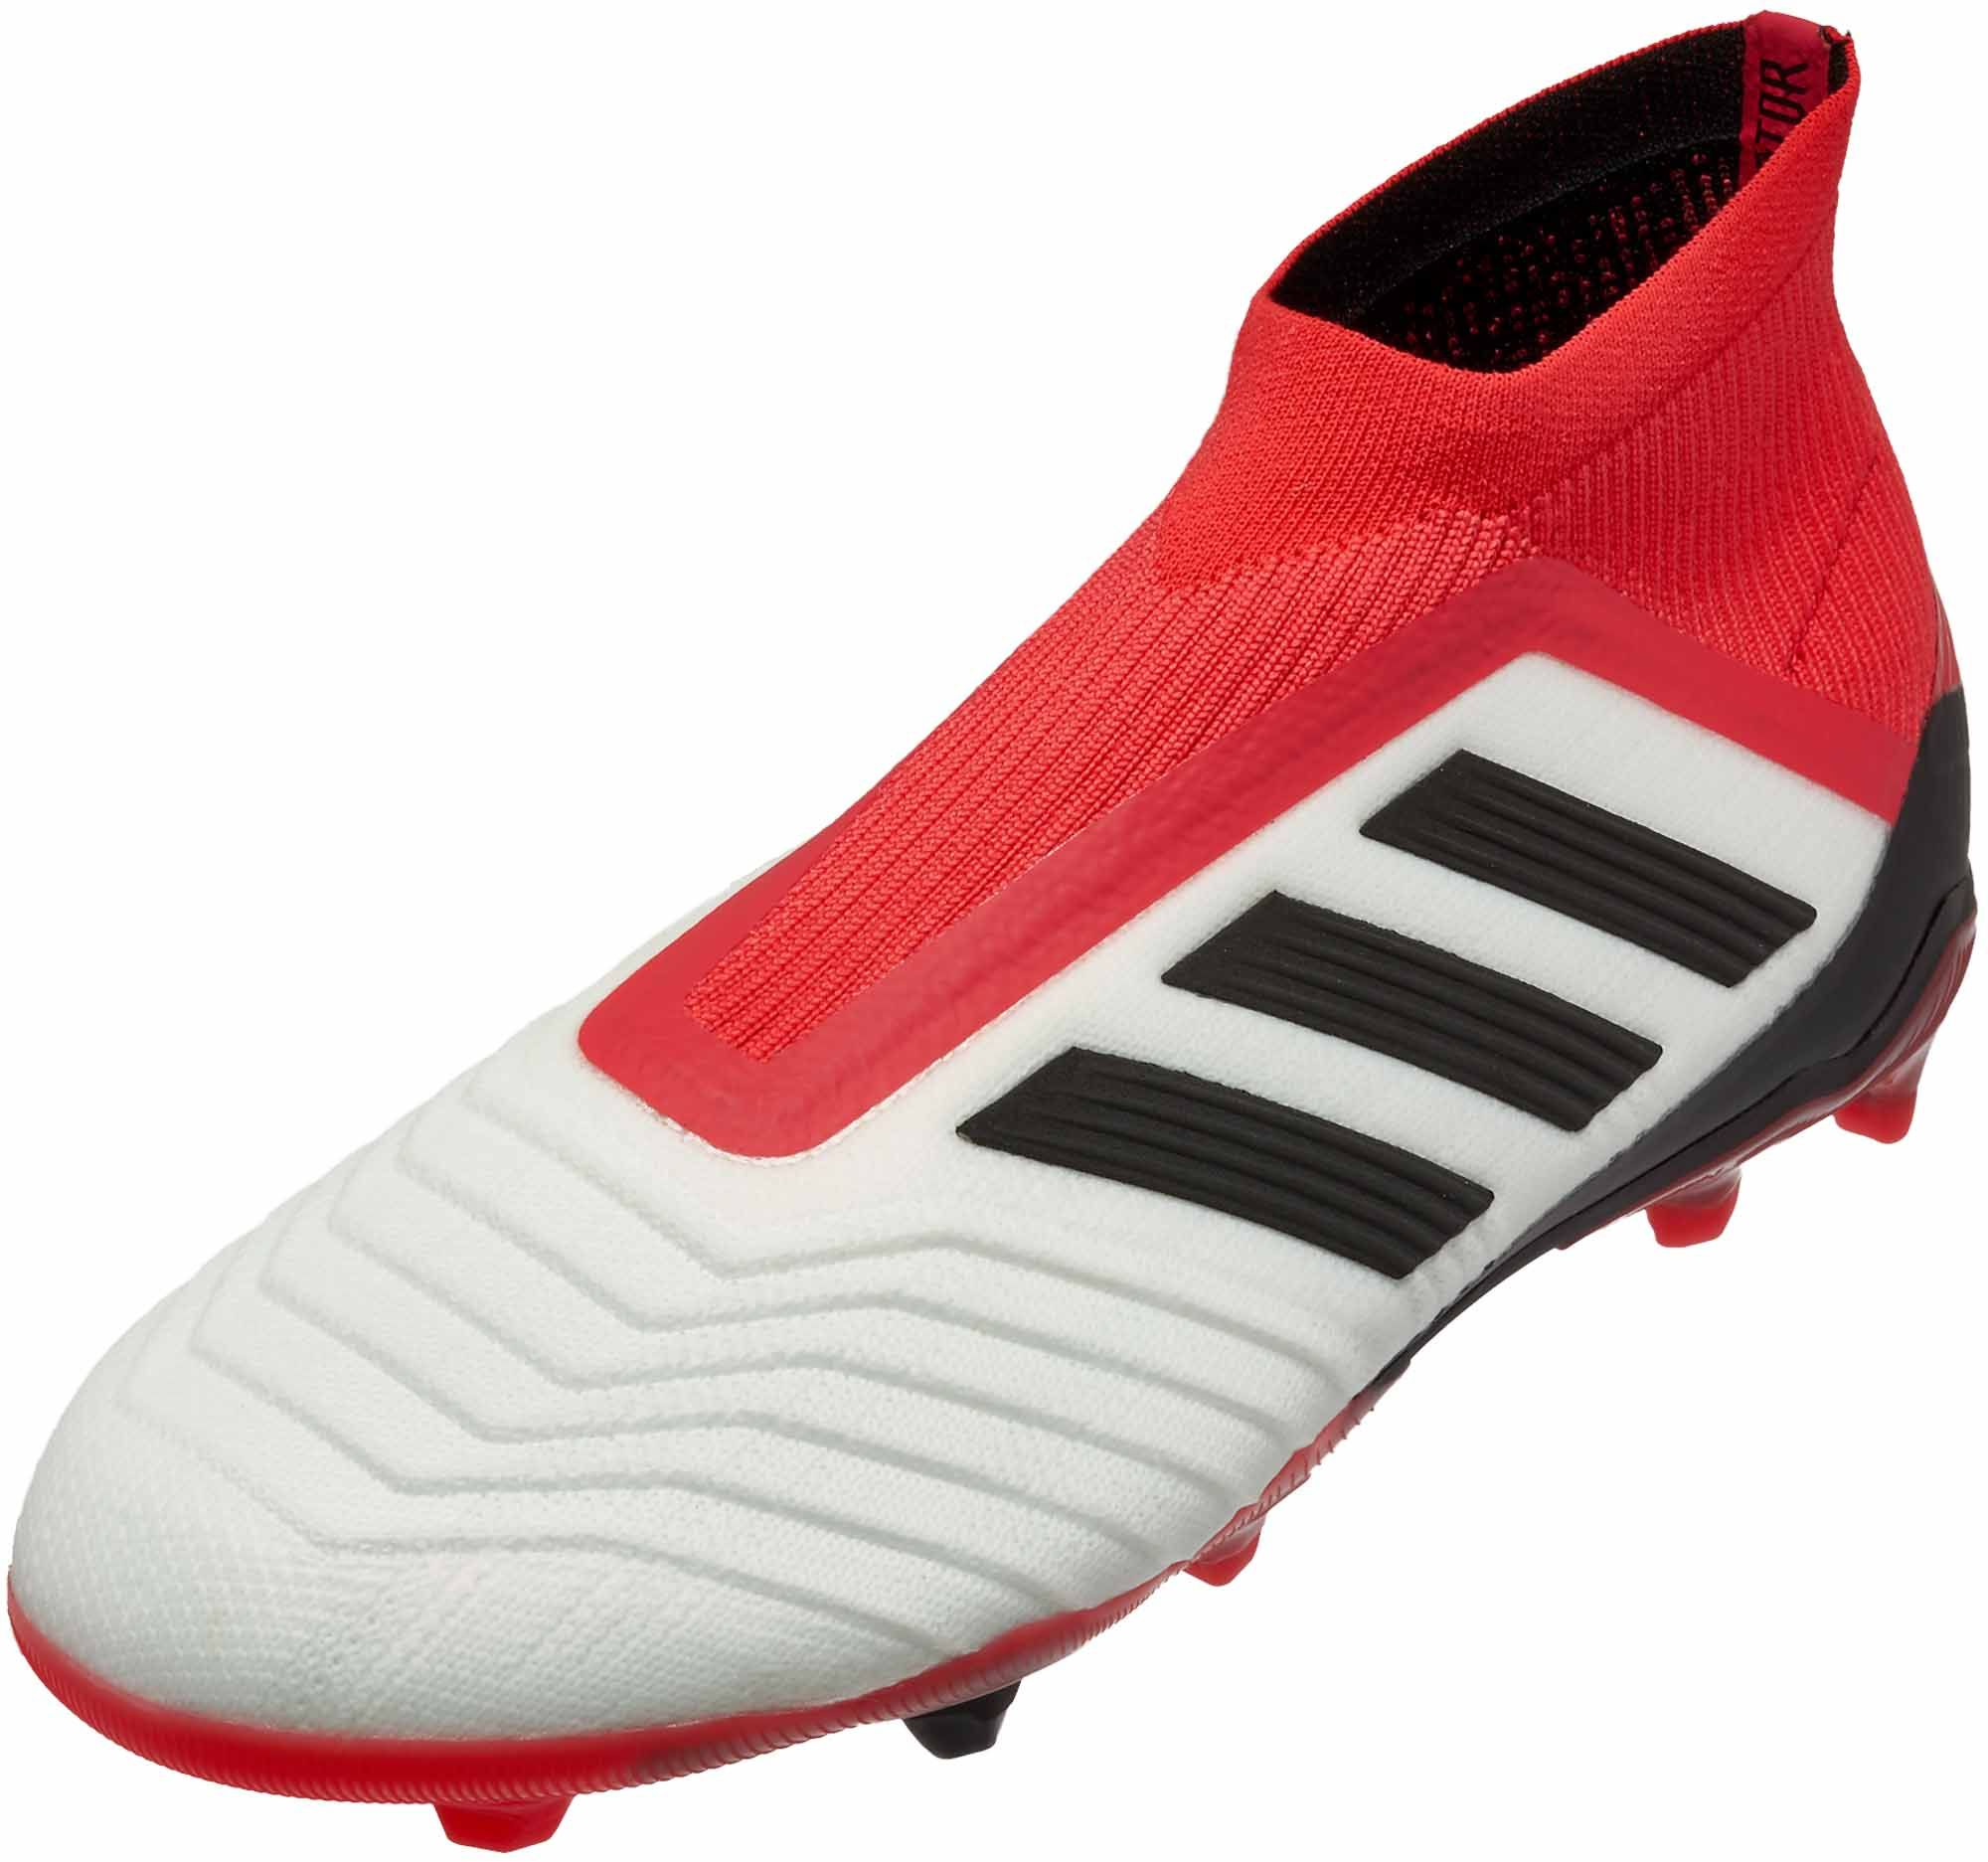 new products 39617 db29c Kids adidas Predator 18+ Buy yours now from SoccerPro.